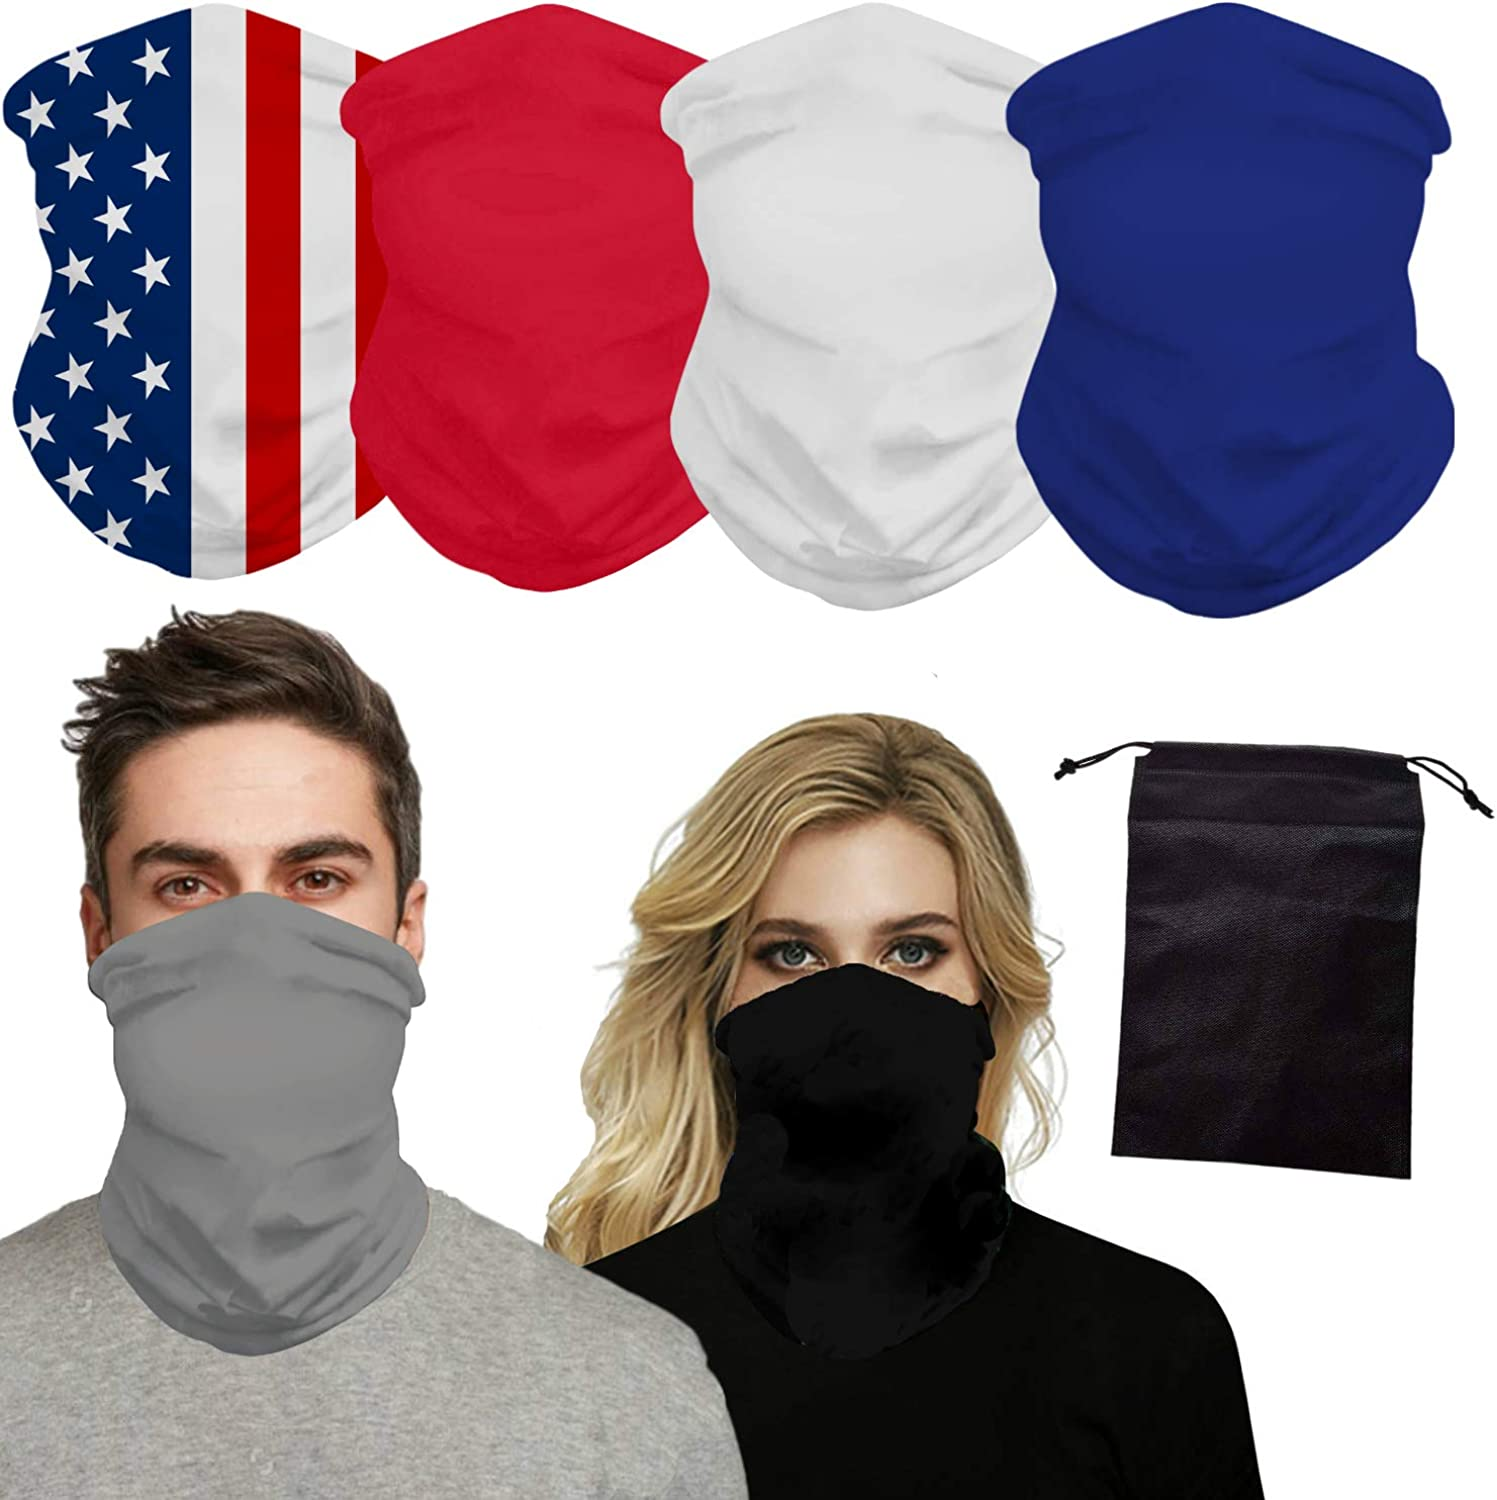 Pendant Sports Protective Face Cover - 6 Pack with Bonus Storage Pouch Scarf Bandanna Balaclava Dust Mask Neck Gaiter Sun Wind Blocking Face Protection for Cycling Hiking Boating Fishing Hunting